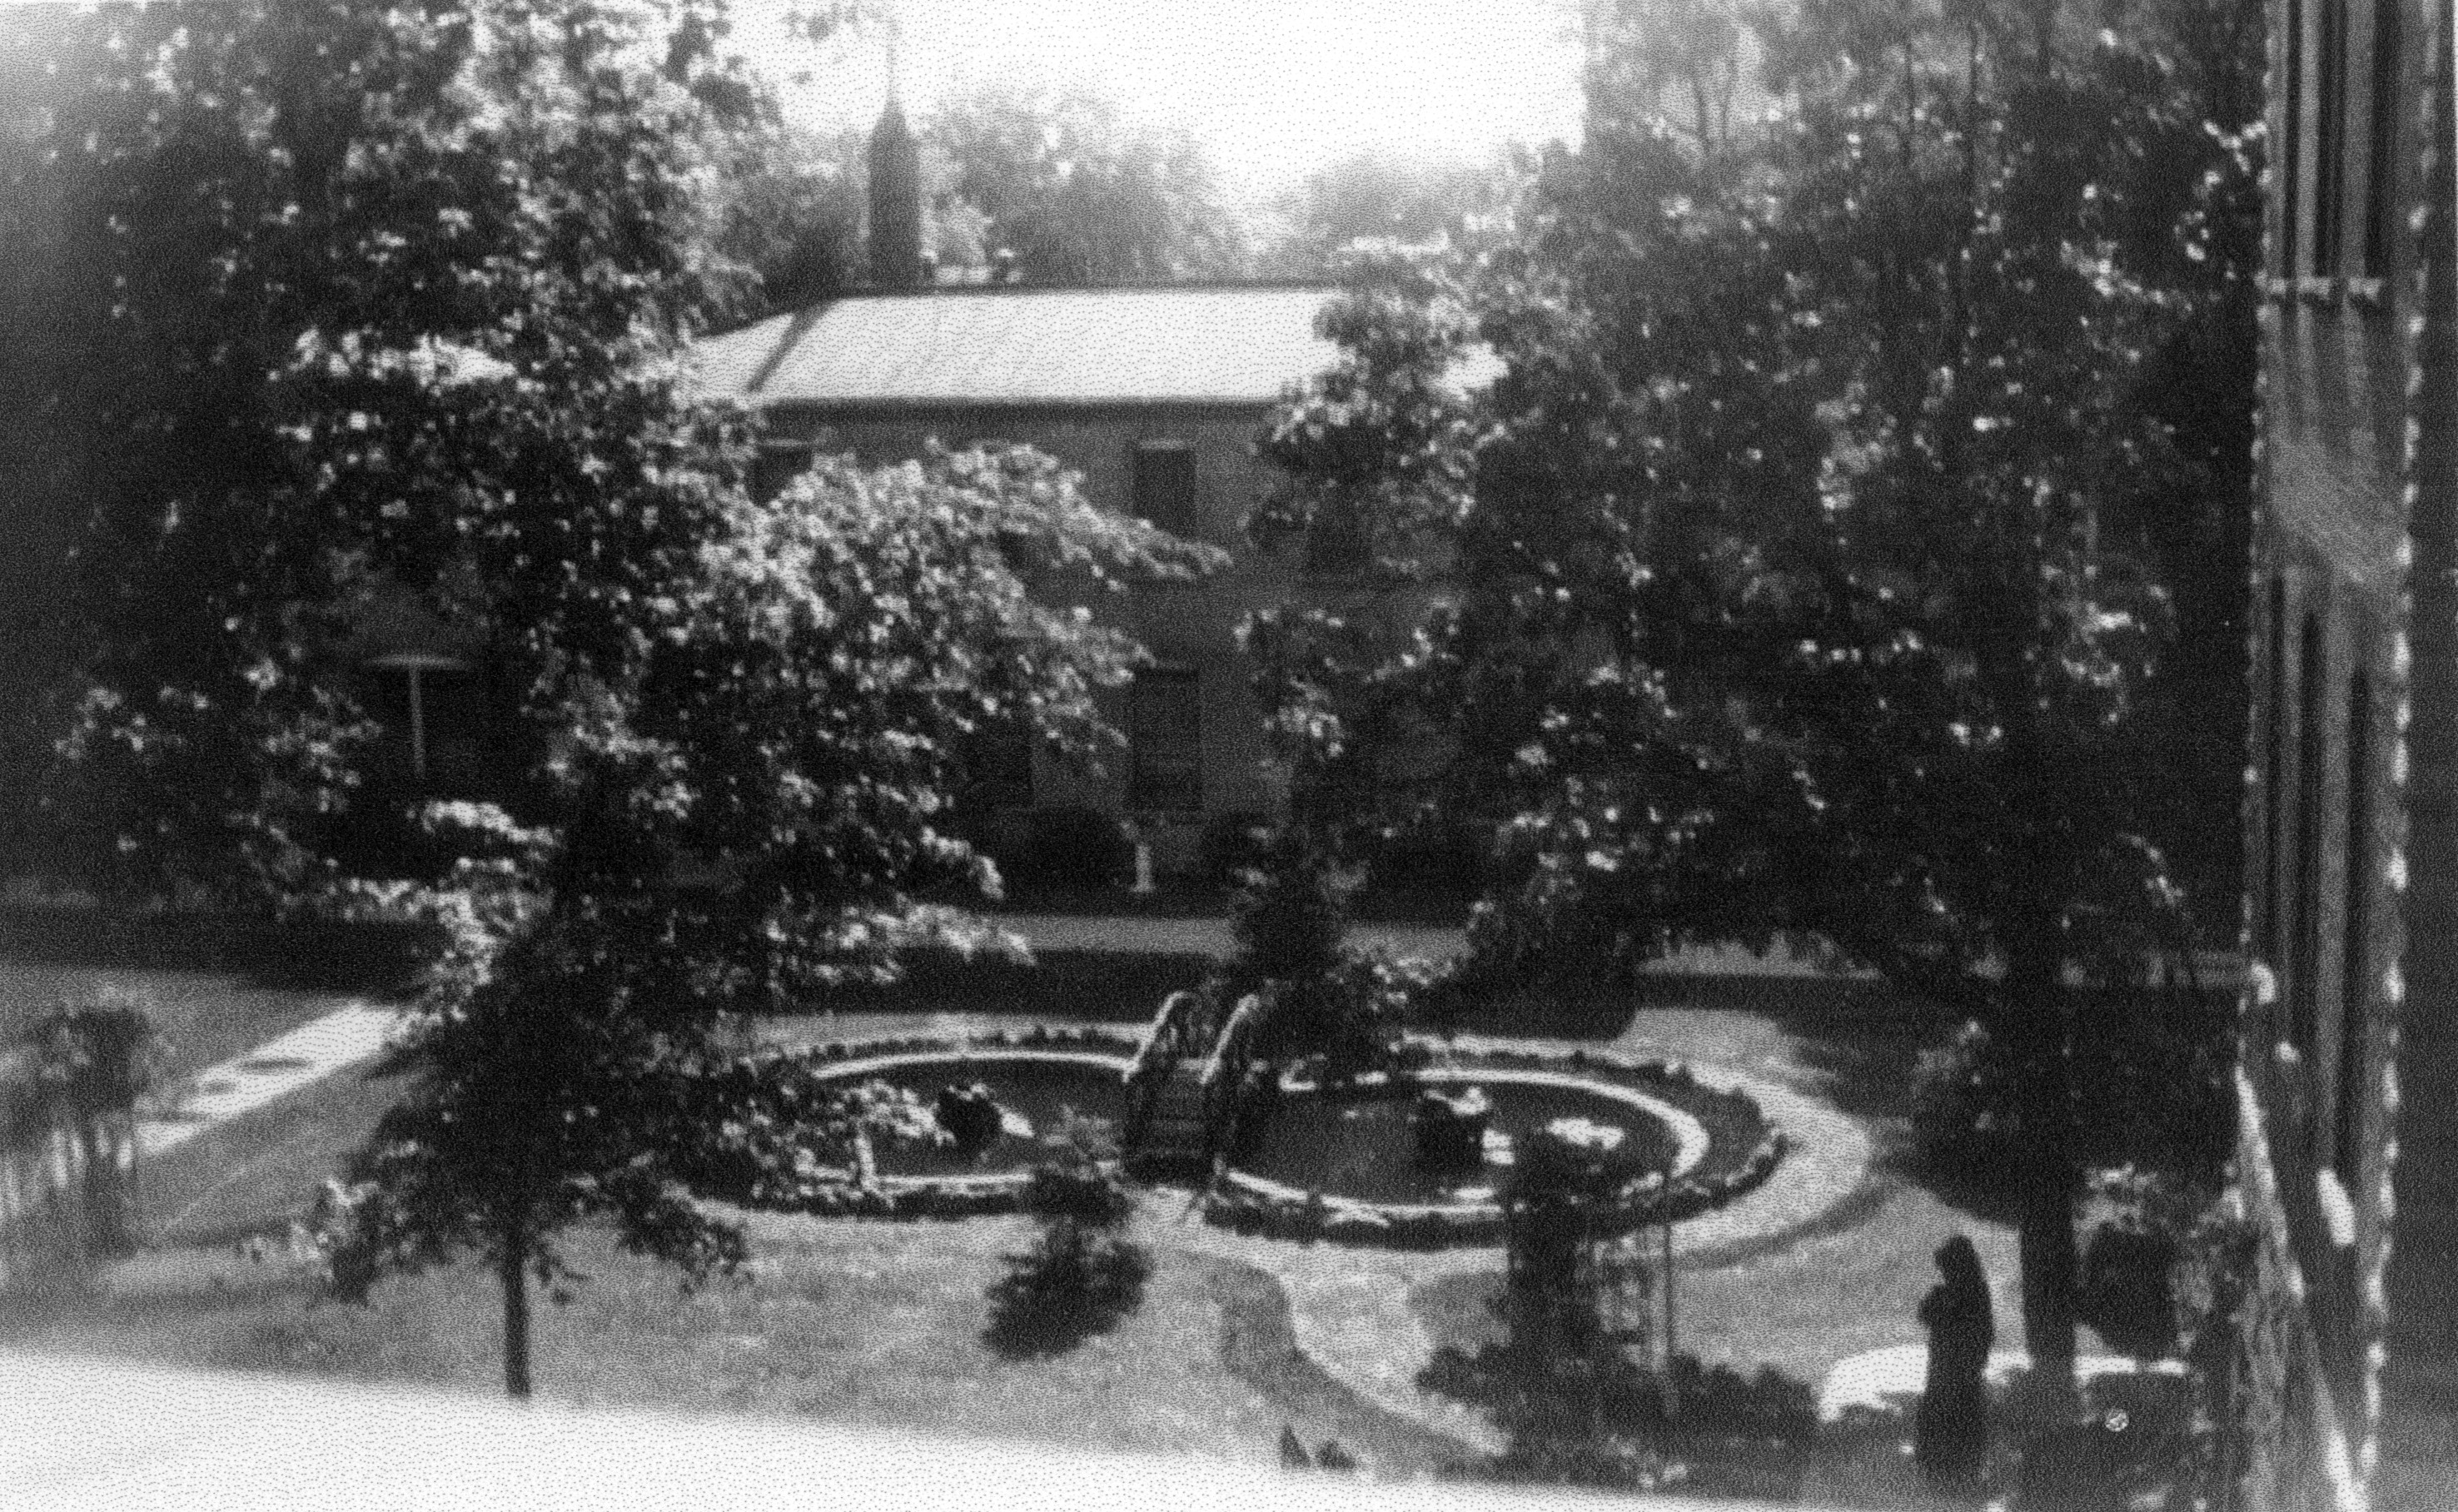 Garden in the back of the CSA motherhouse, c. 1940s.